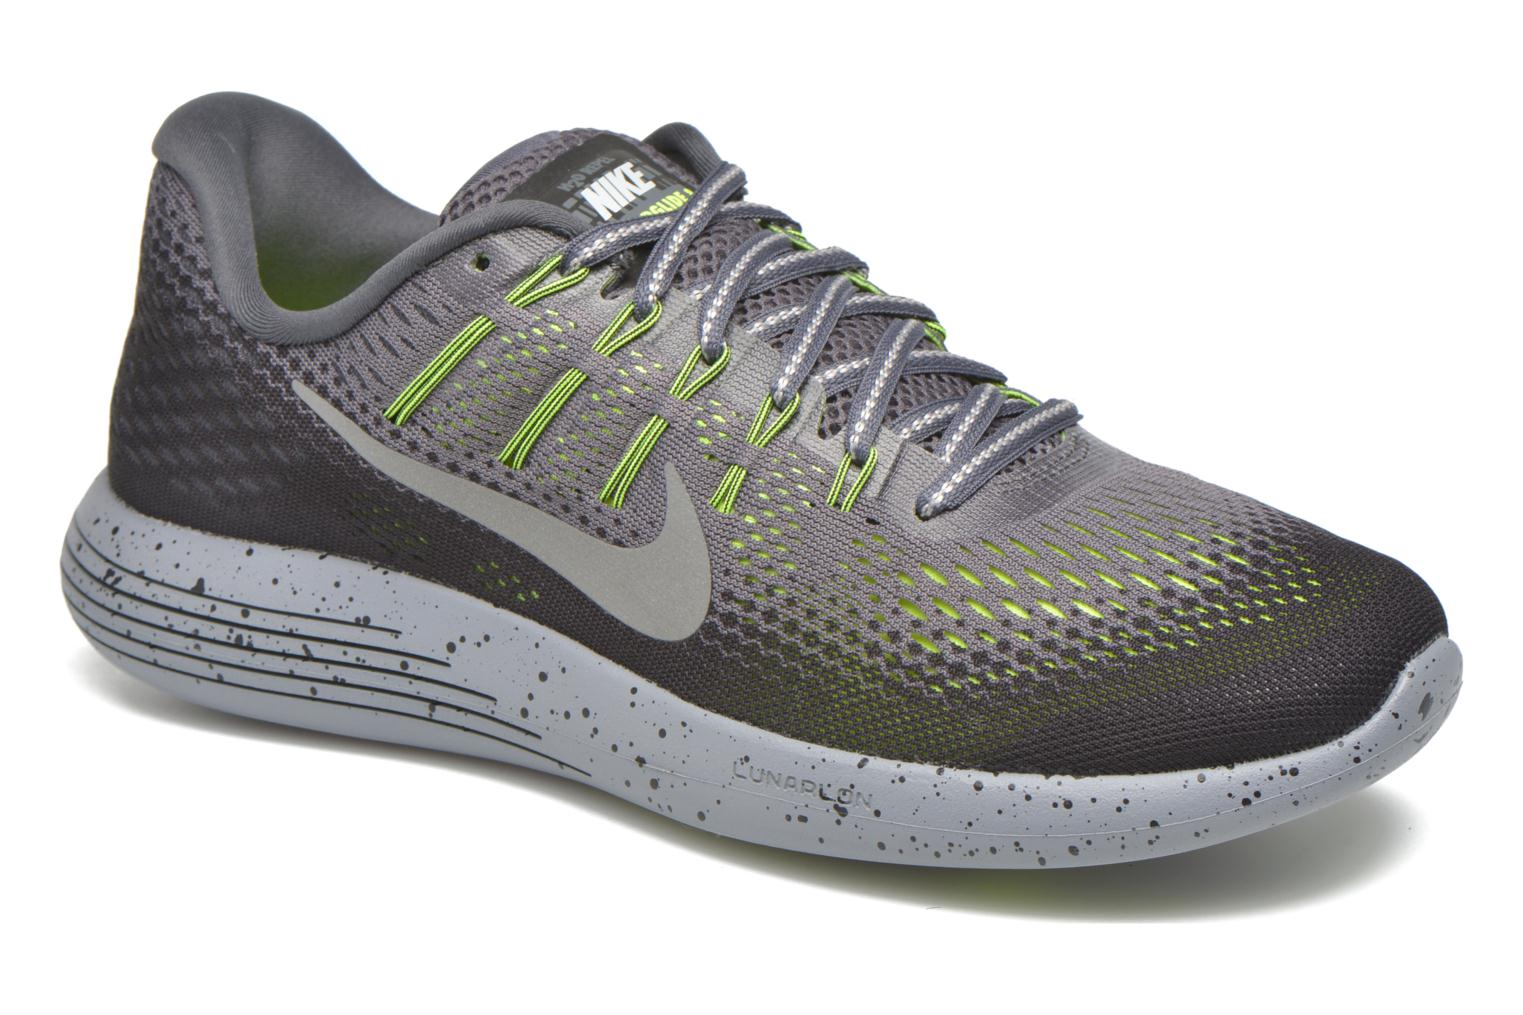 Nike Lunarglide 8 Shield Dark Grey/Metallic Silver-Black-Volt